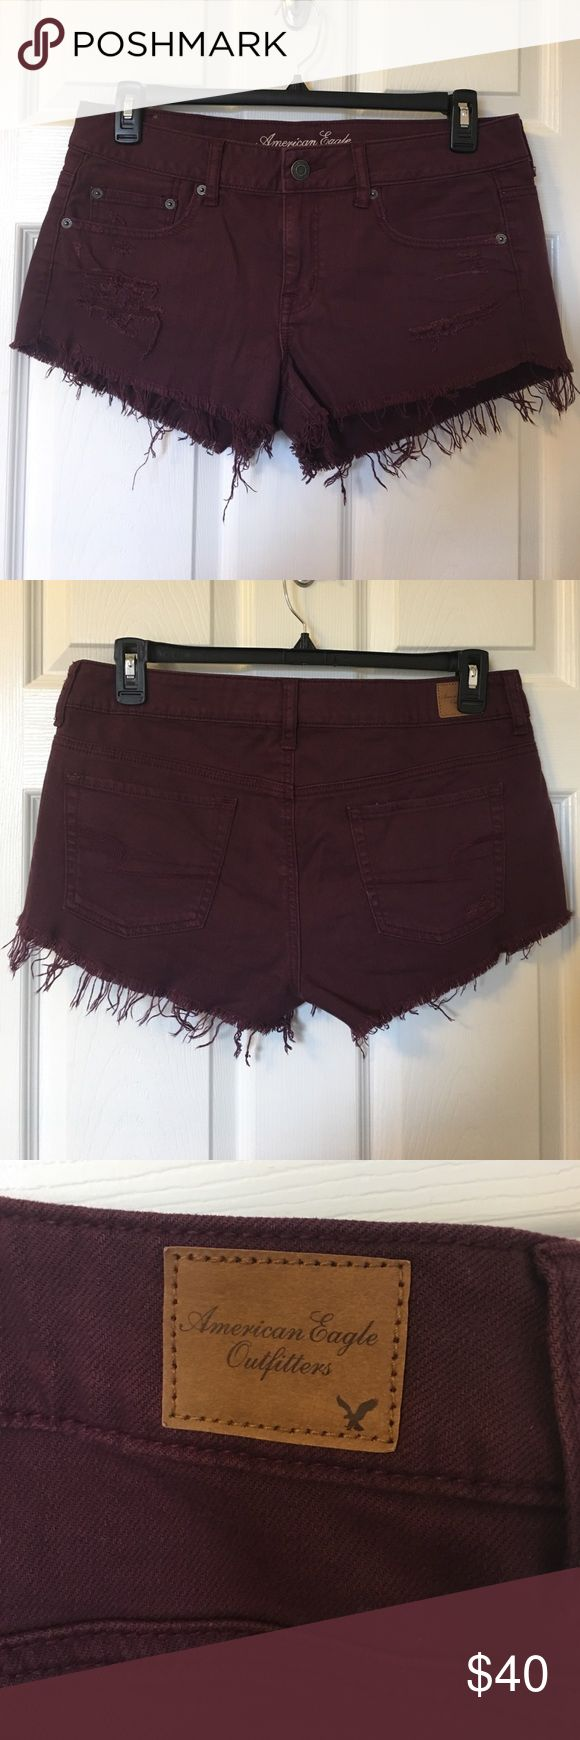 Like New! American Eagle HI RISE Burgundy Shorts In perfect condition! Stretchy, frontal distressing. No Trades American Eagle Outfitters Shorts Jean Shorts